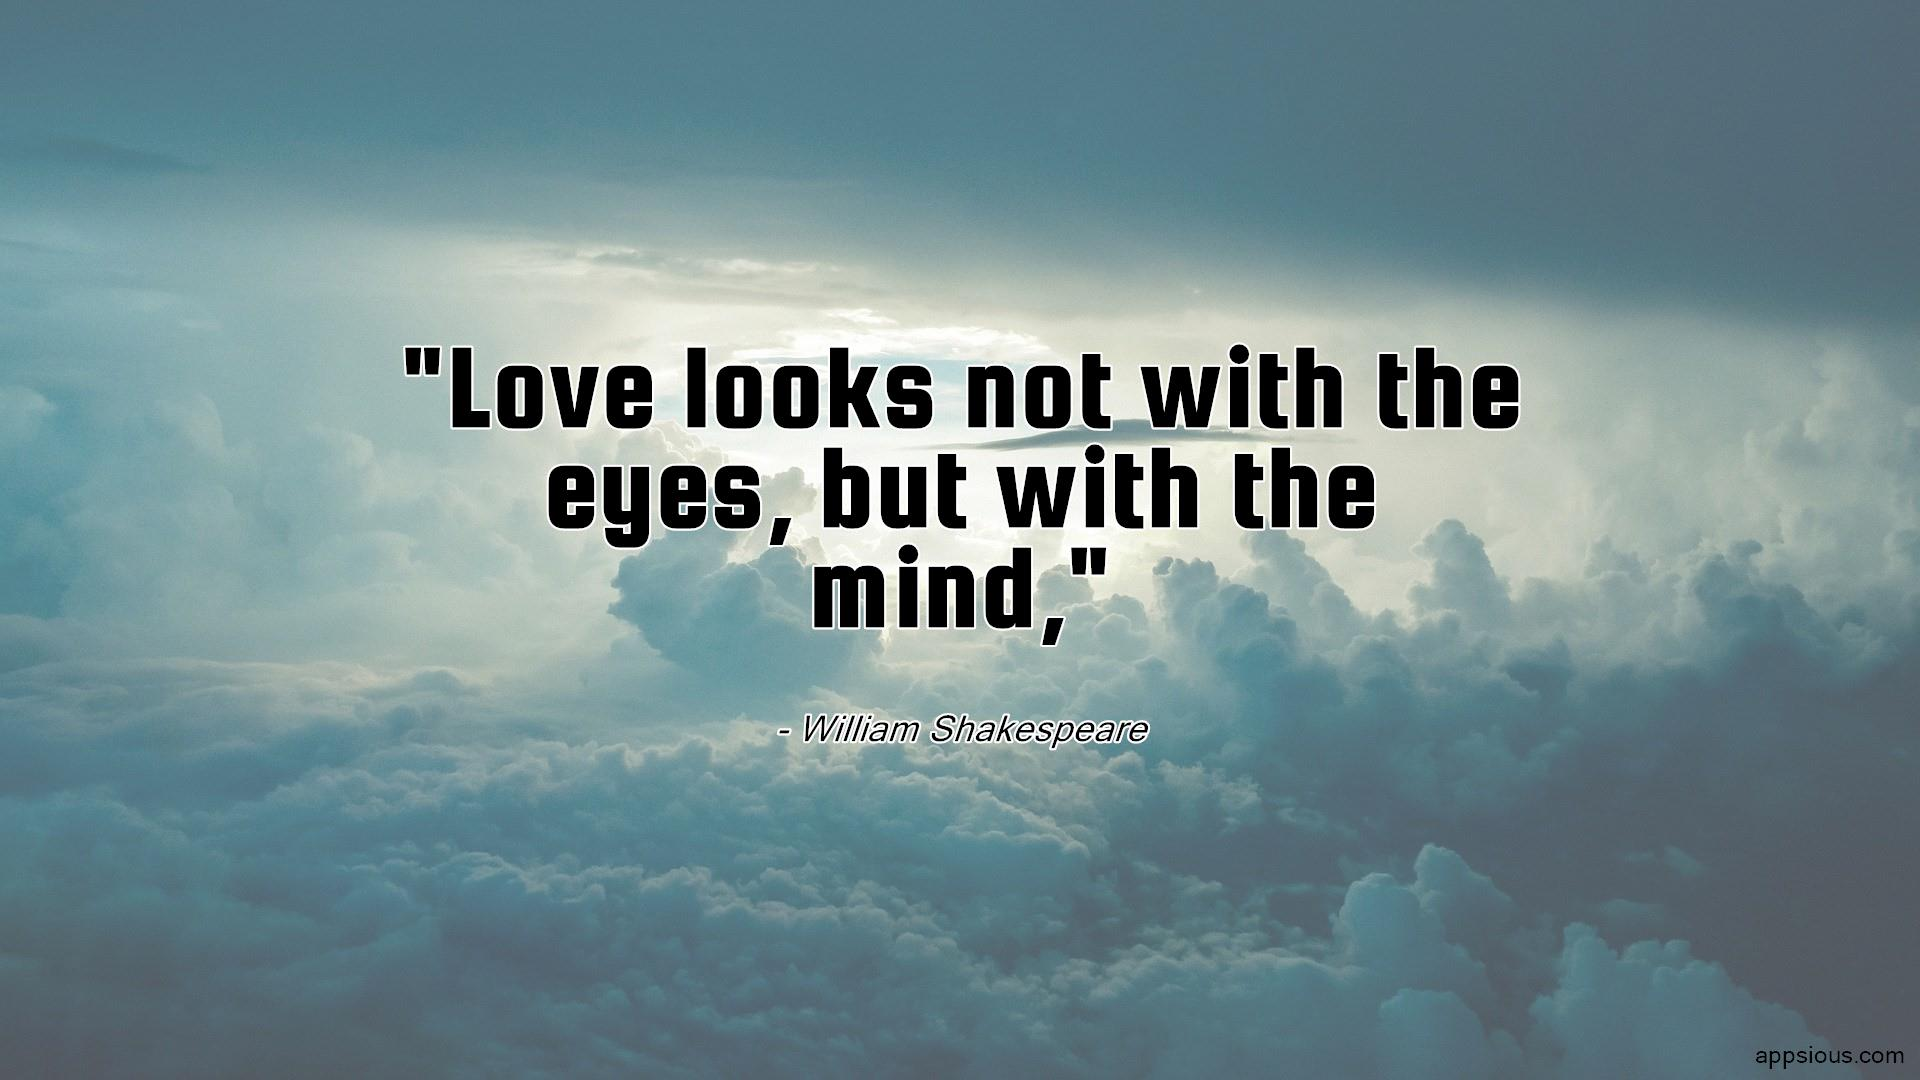 Love looks not with the eyes, but with the mind,